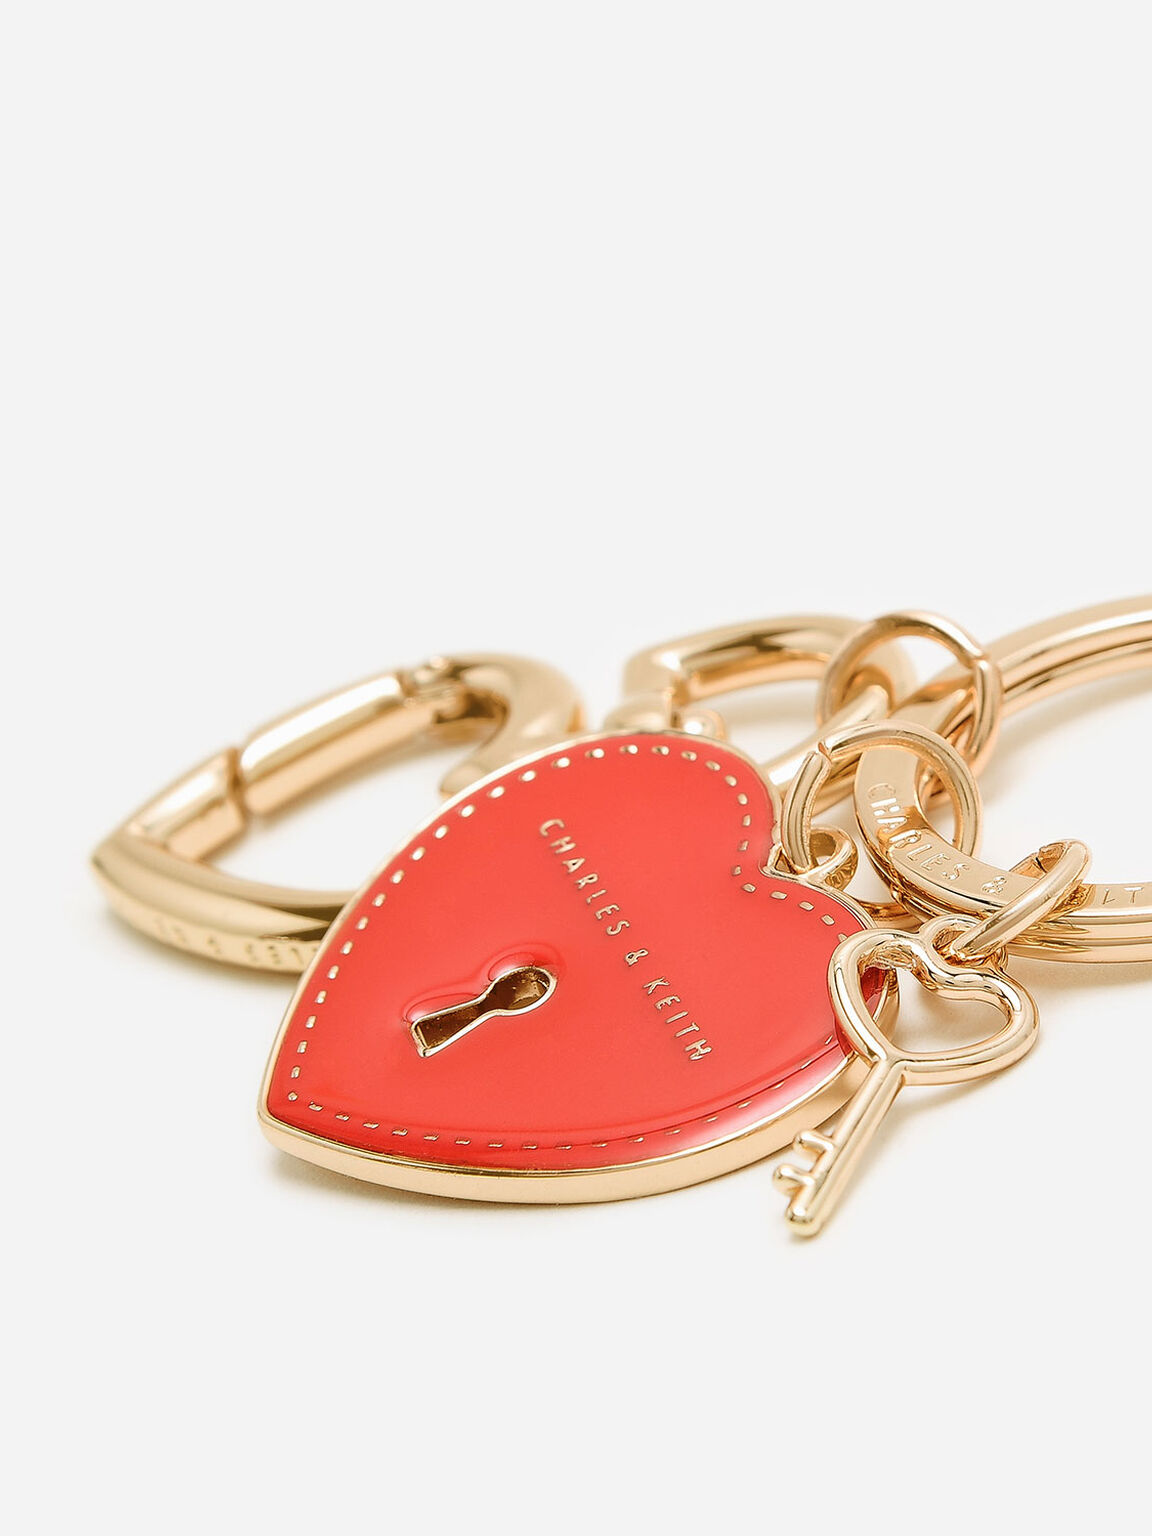 Heart Lock Keychain, Red, hi-res